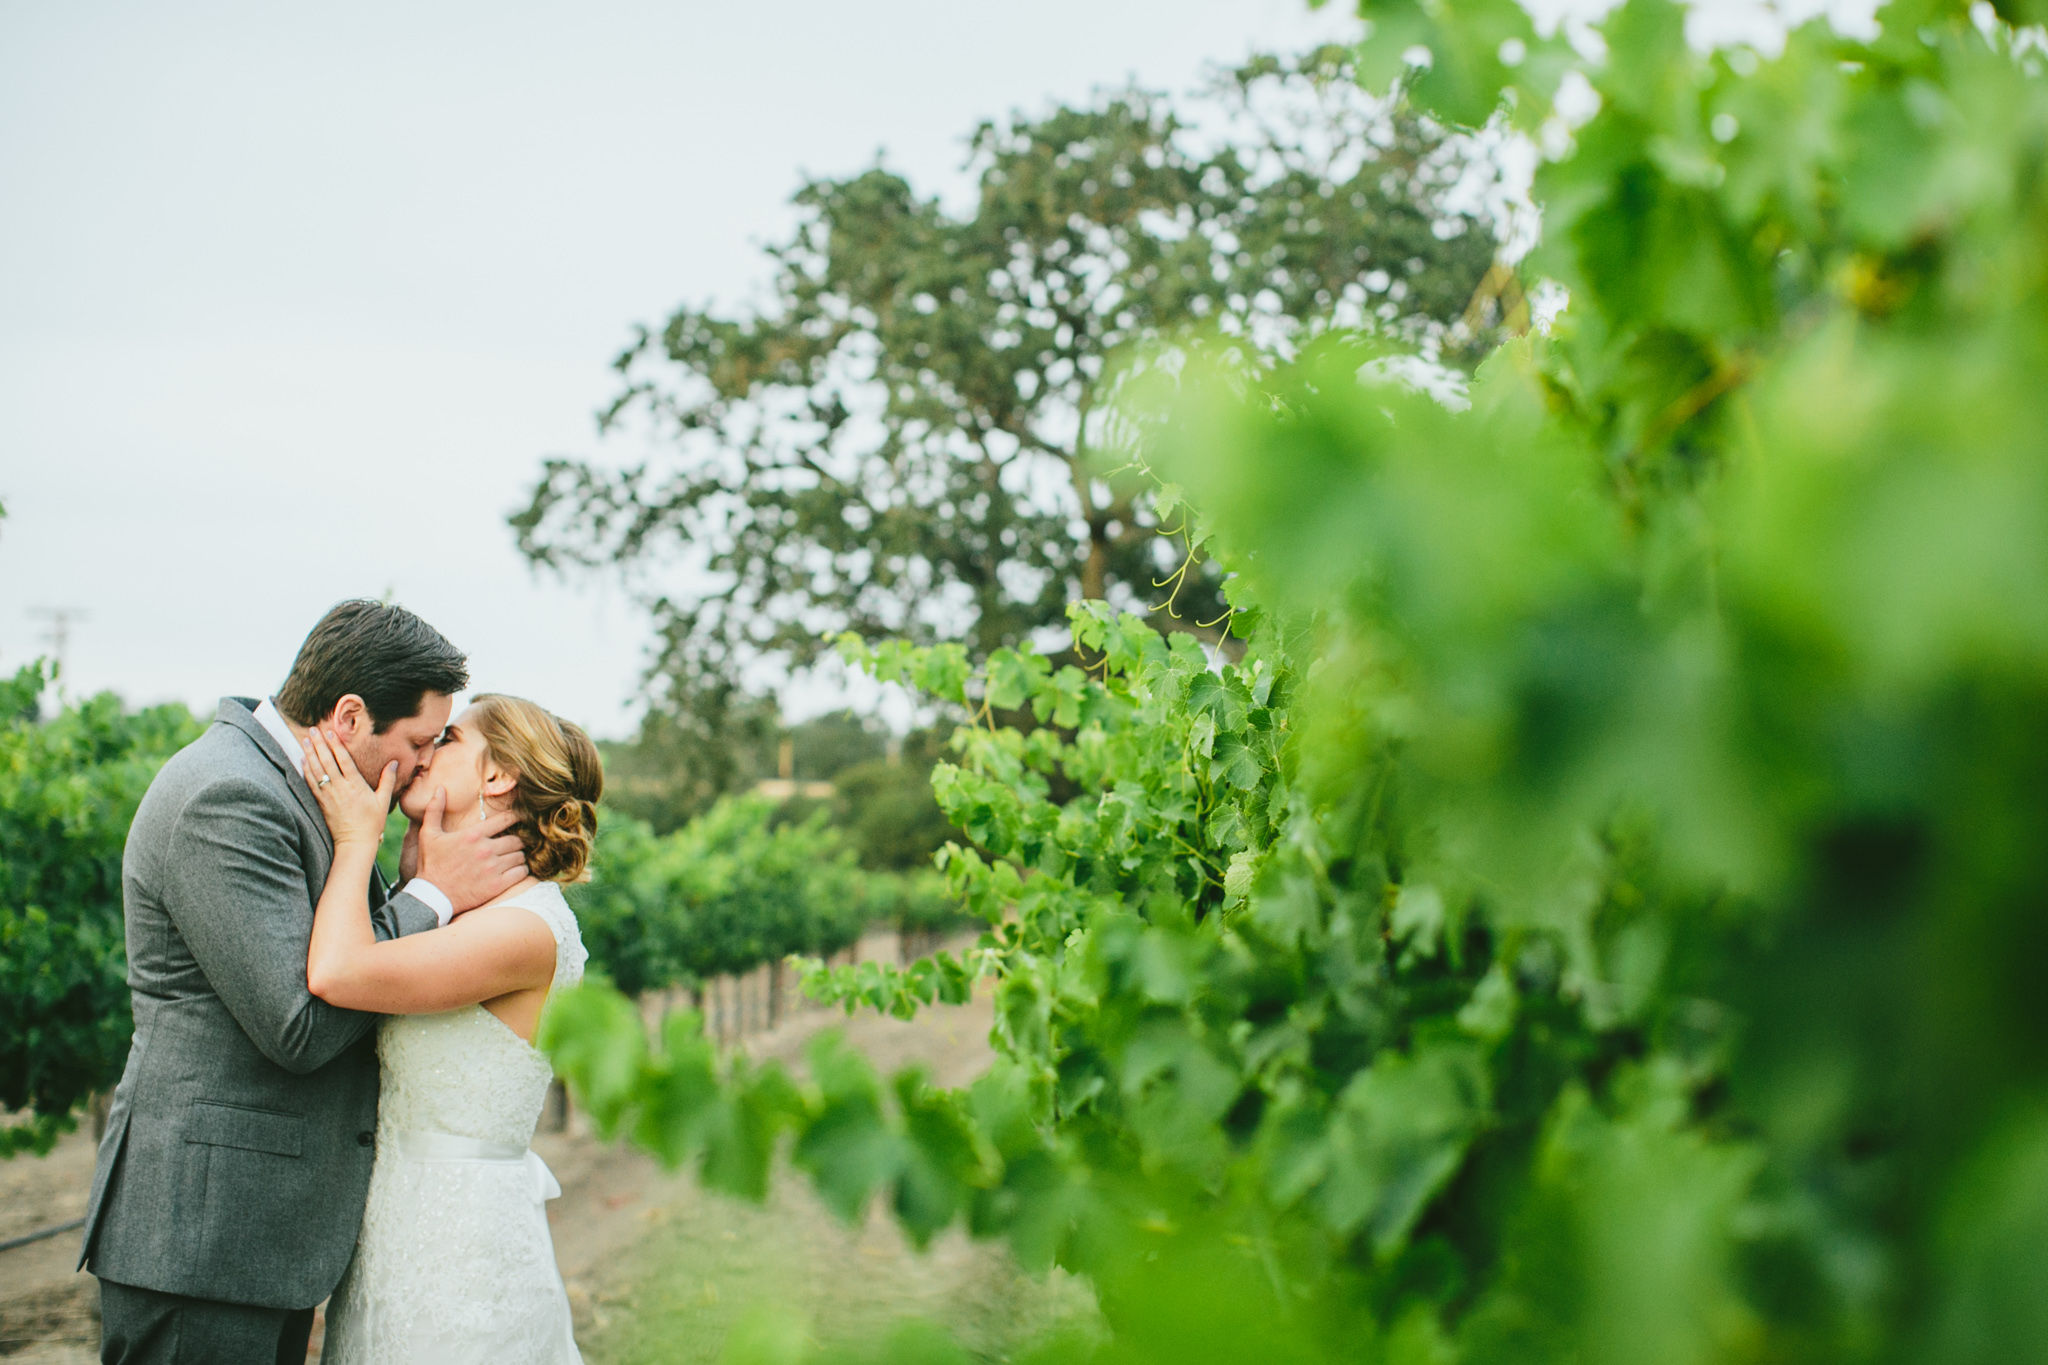 whitney+parker-WEB_BLOG-142